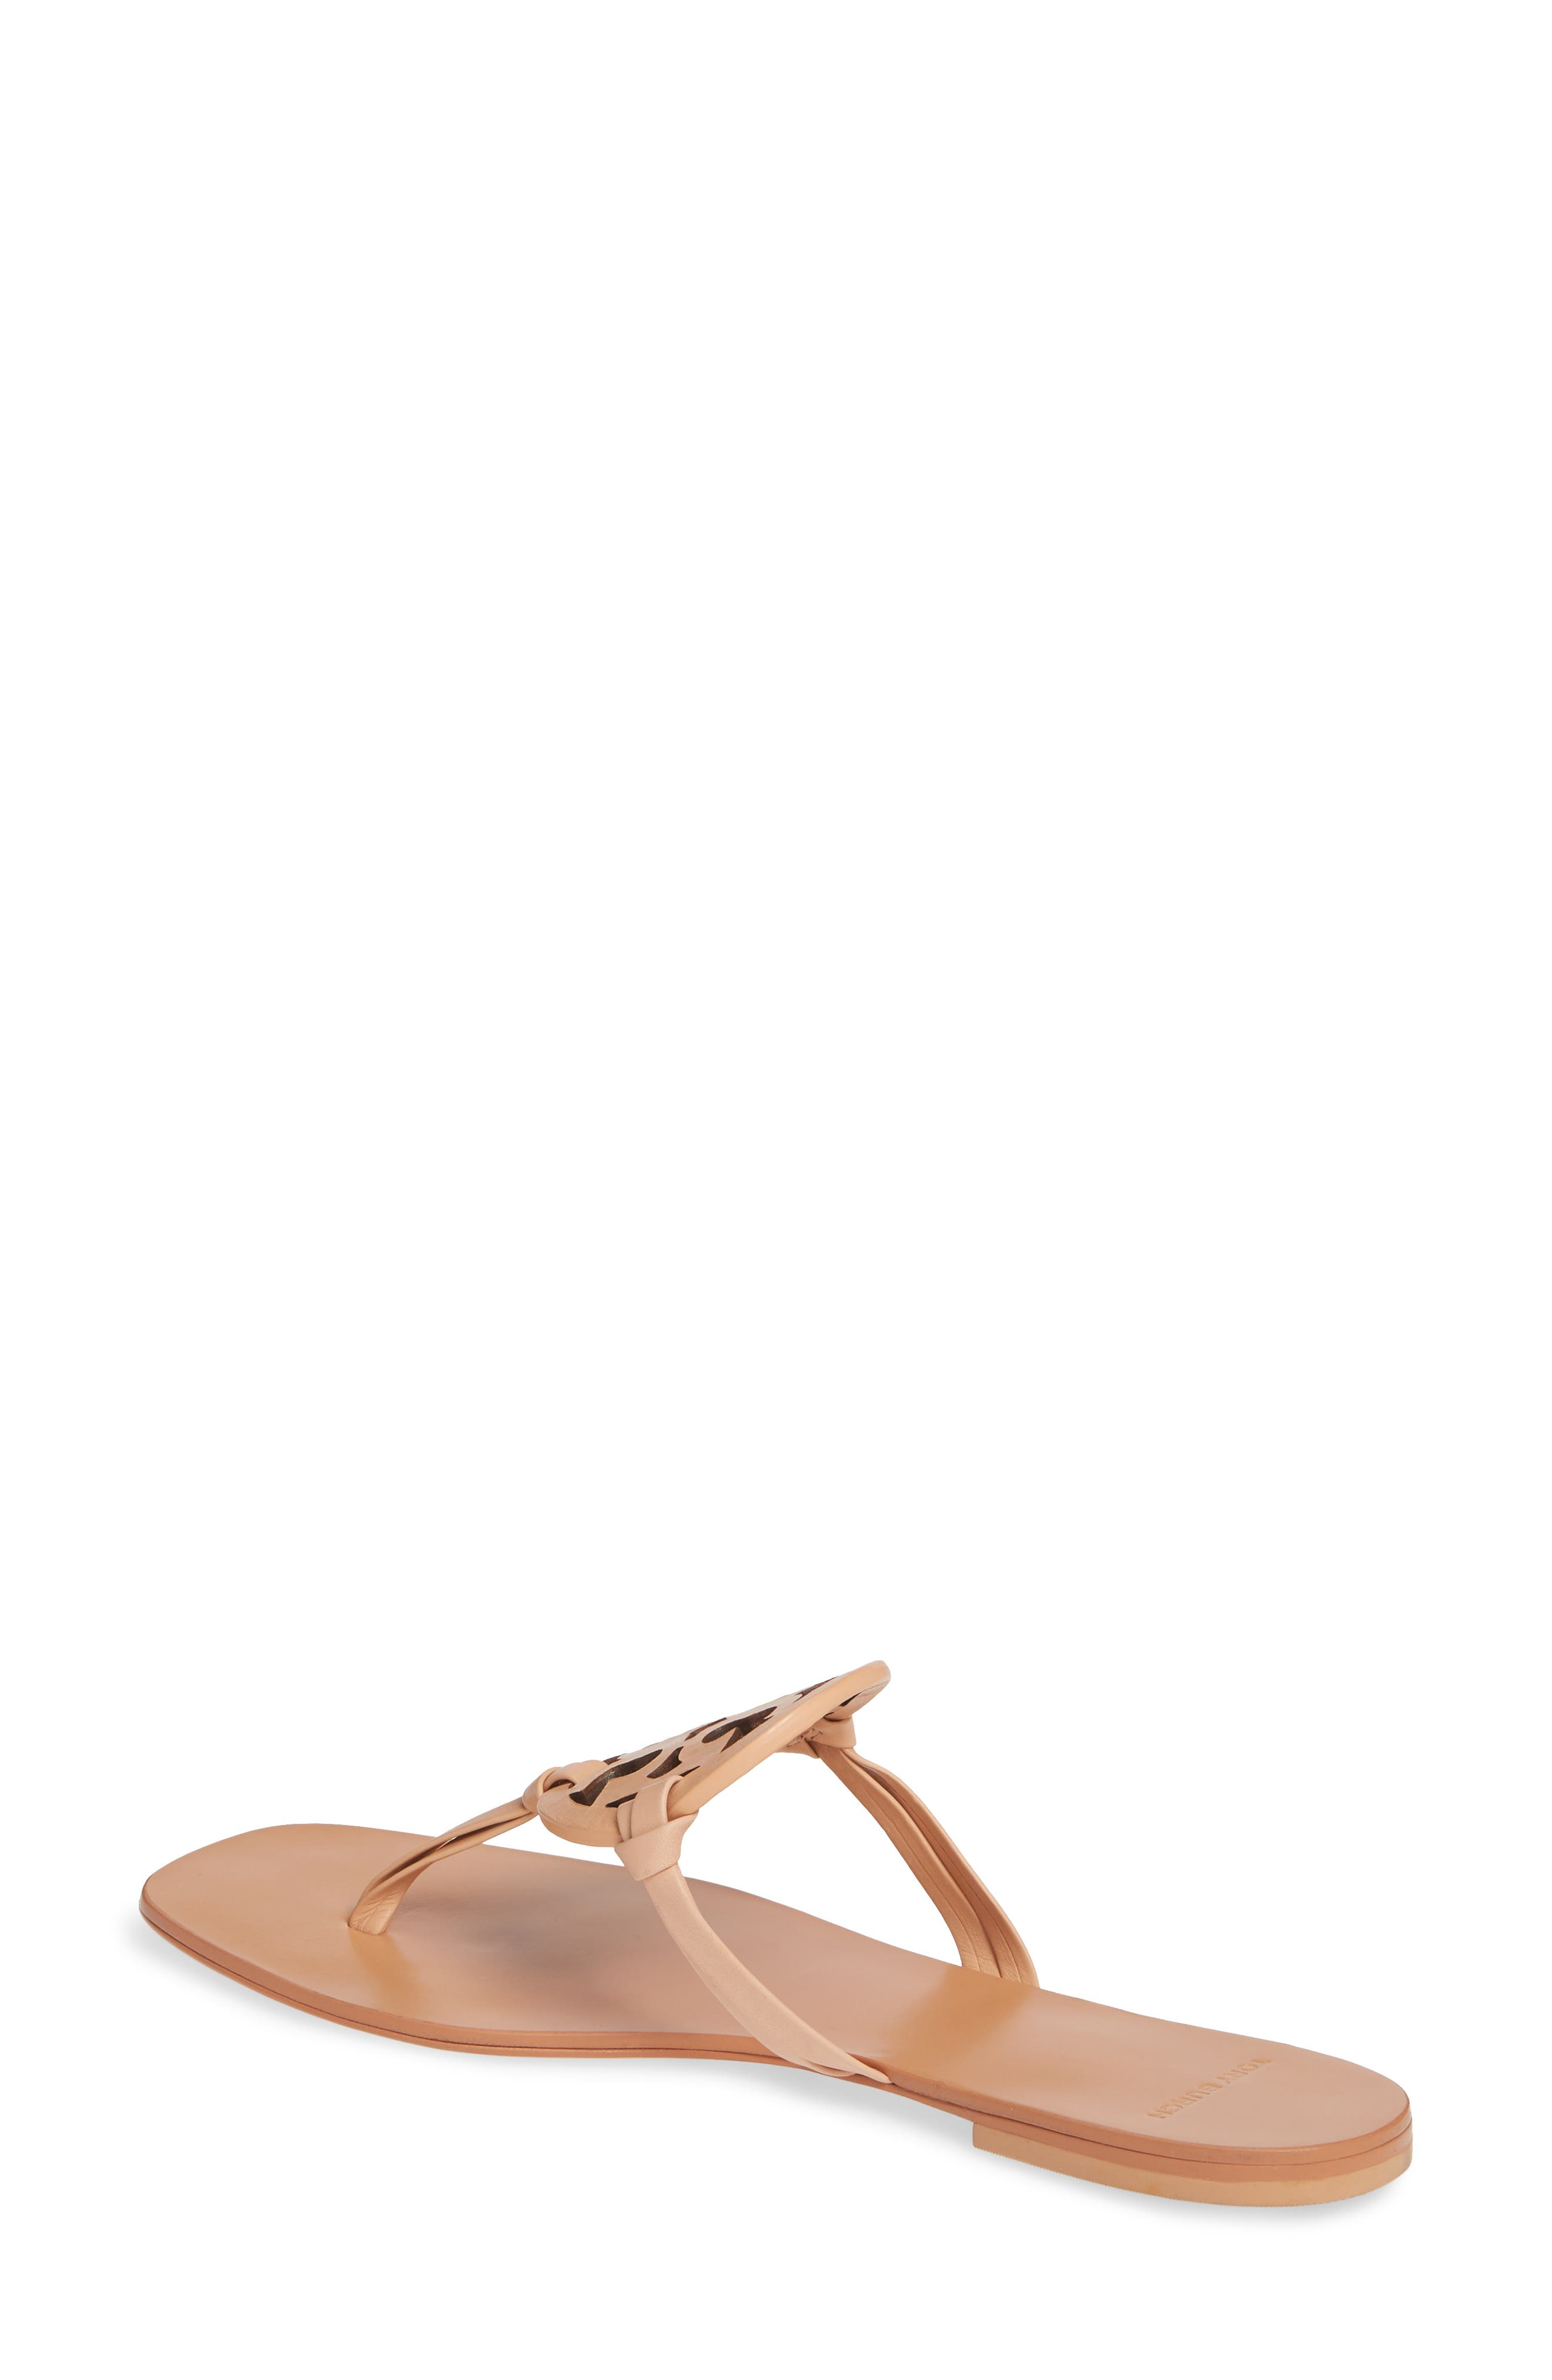 TORY BURCH, Miller Square Toe Thong Sandal, Alternate thumbnail 2, color, NATURAL VACHETTA